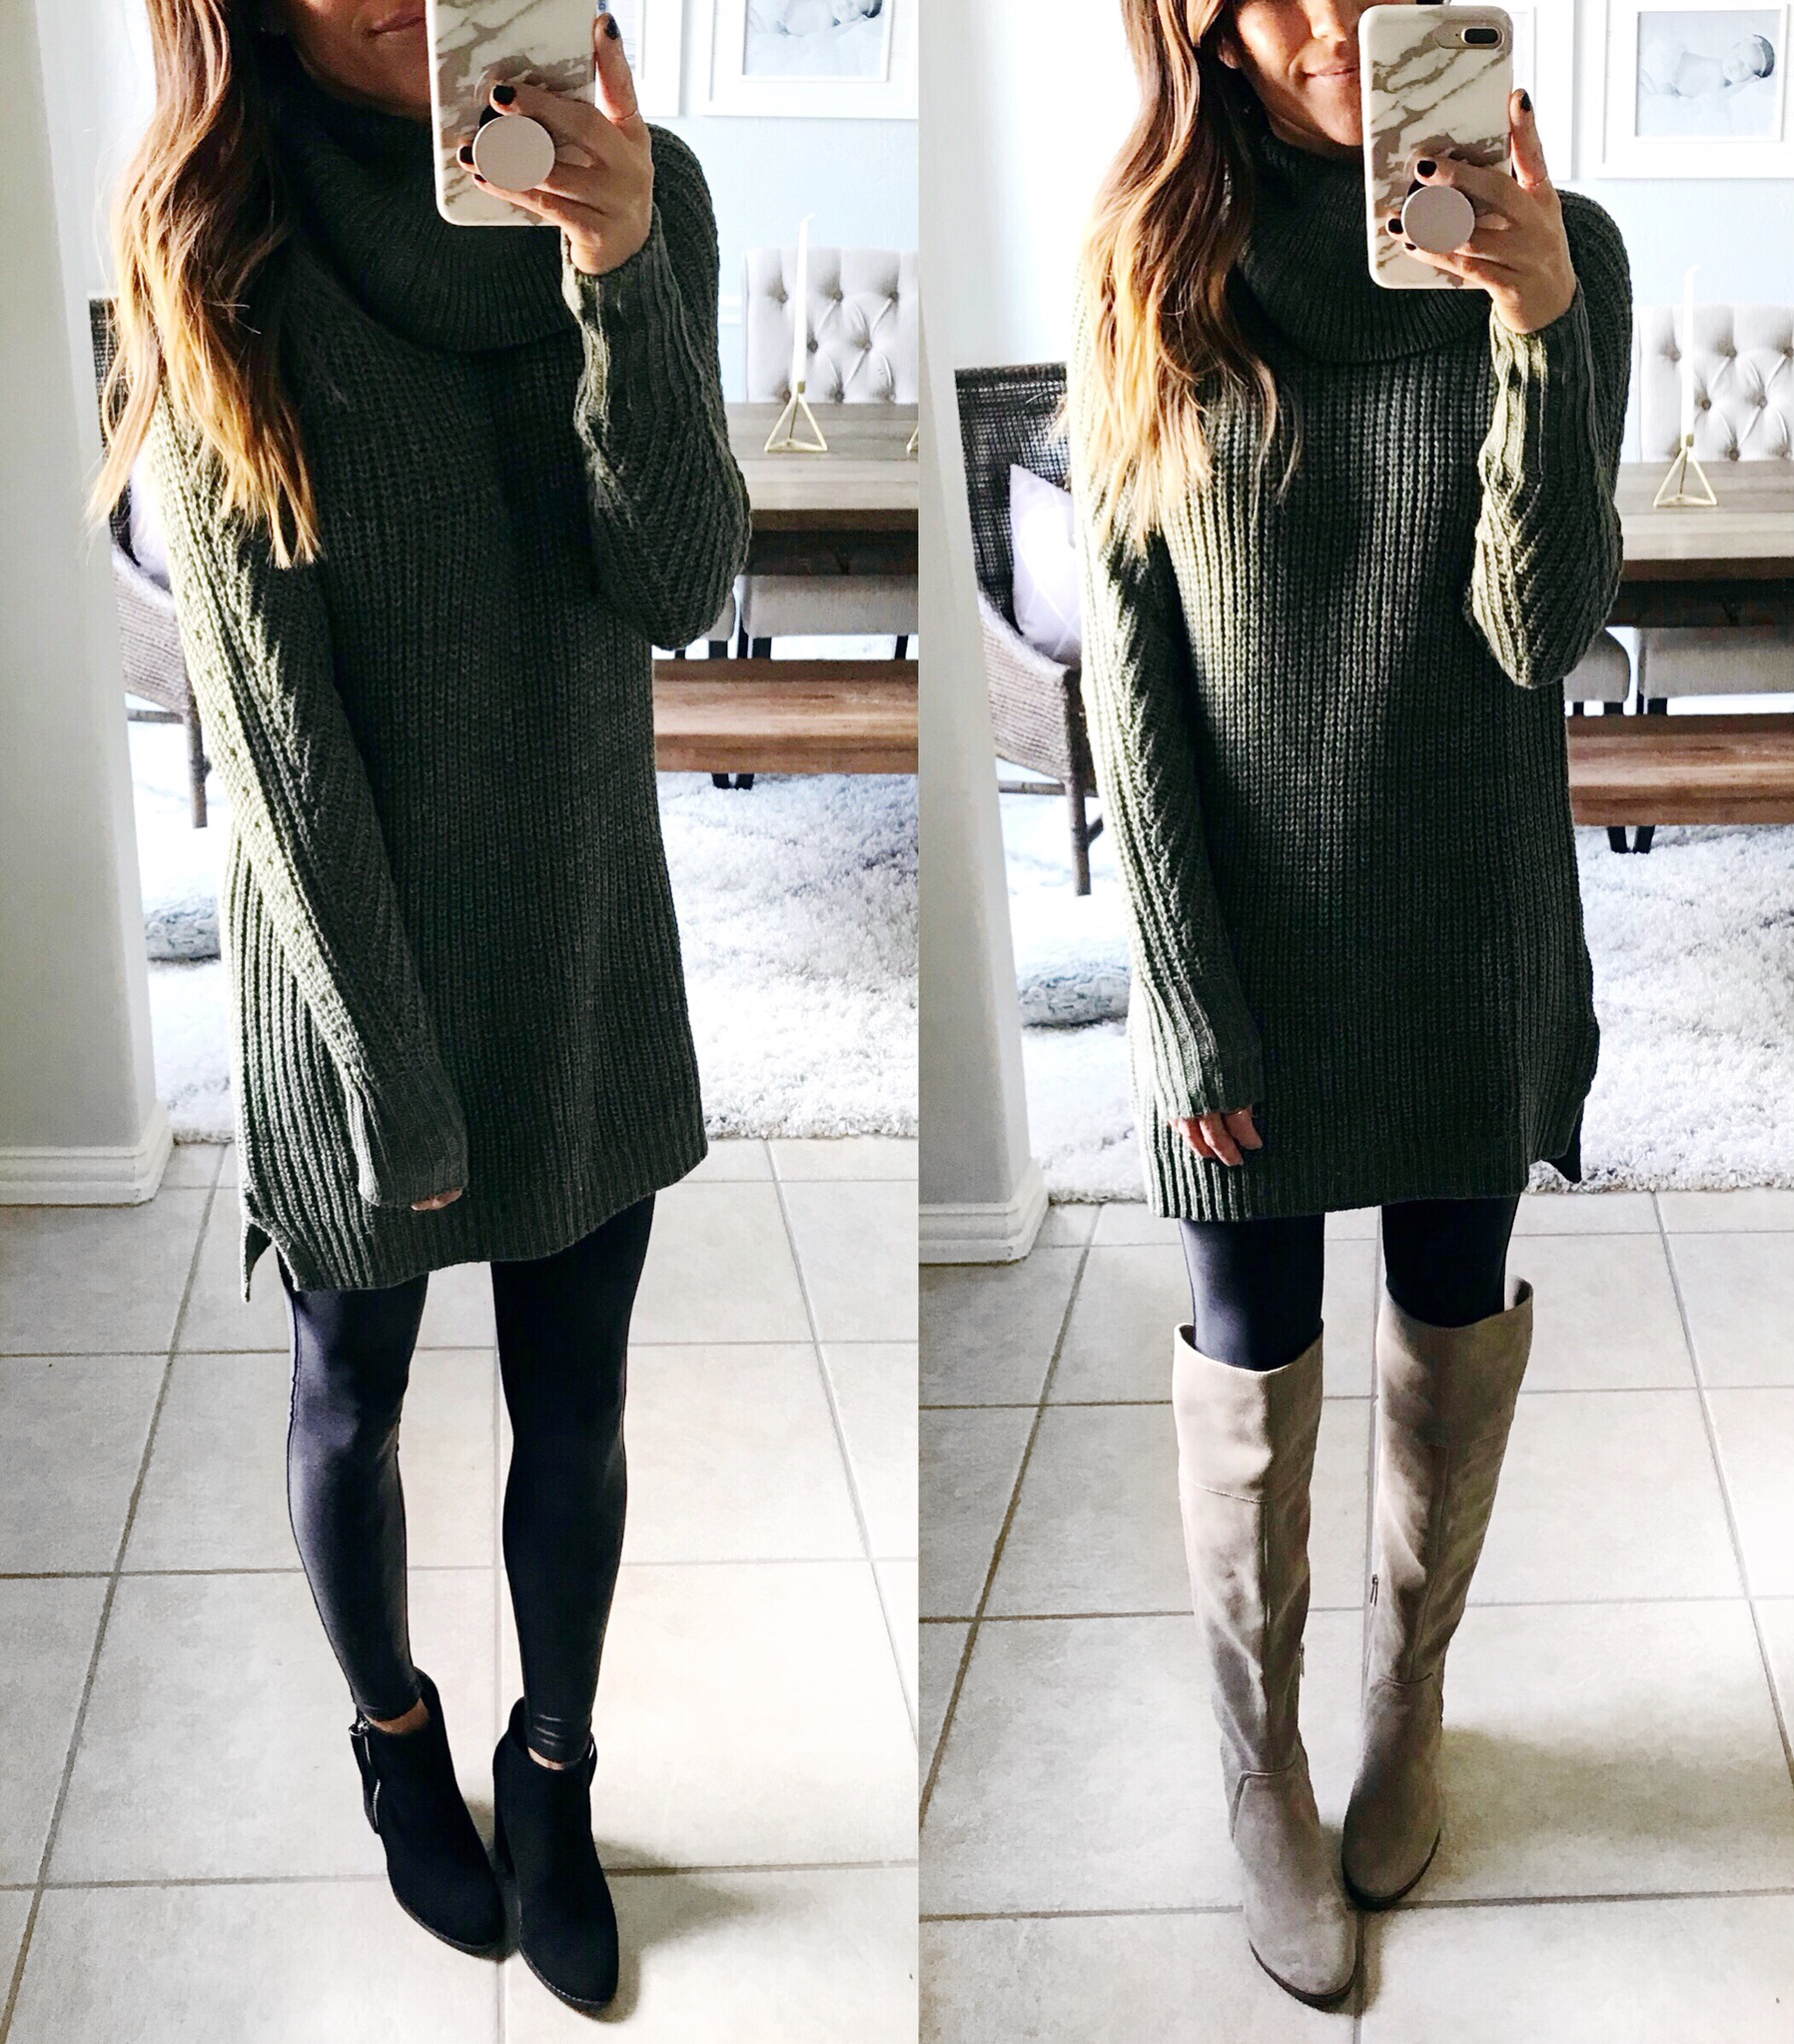 Fall outfit, leggings, tunic sweater